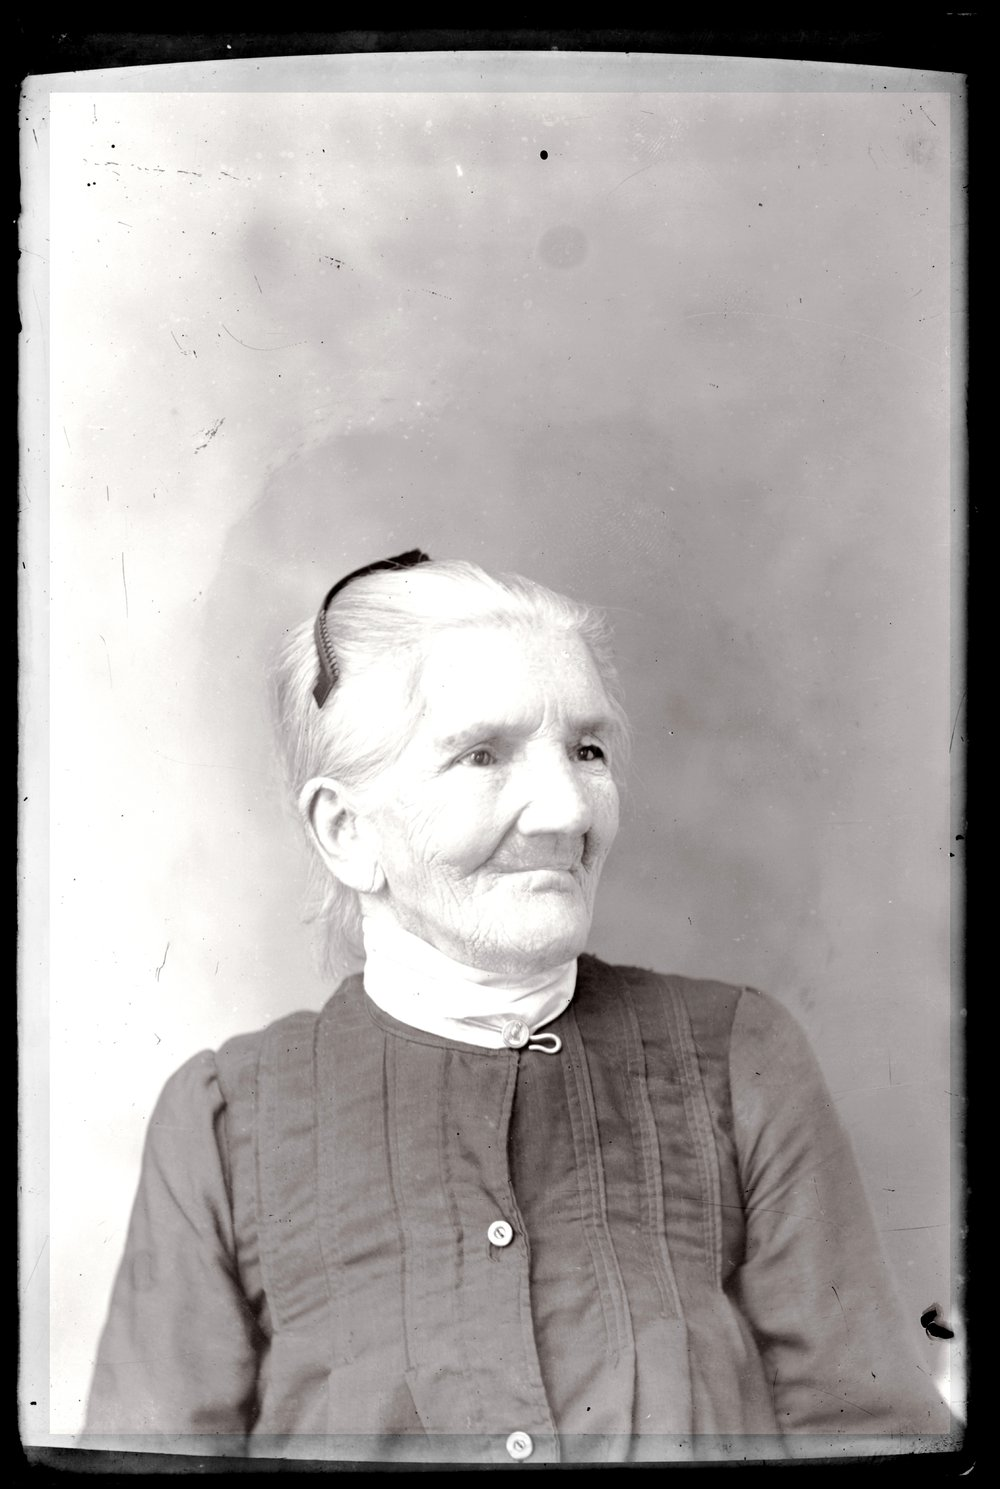 Michael A. Kennedy photo collection, St. Paul, Kansas - Portrait of women in black dress with white detachable collar and hair comb (2762)